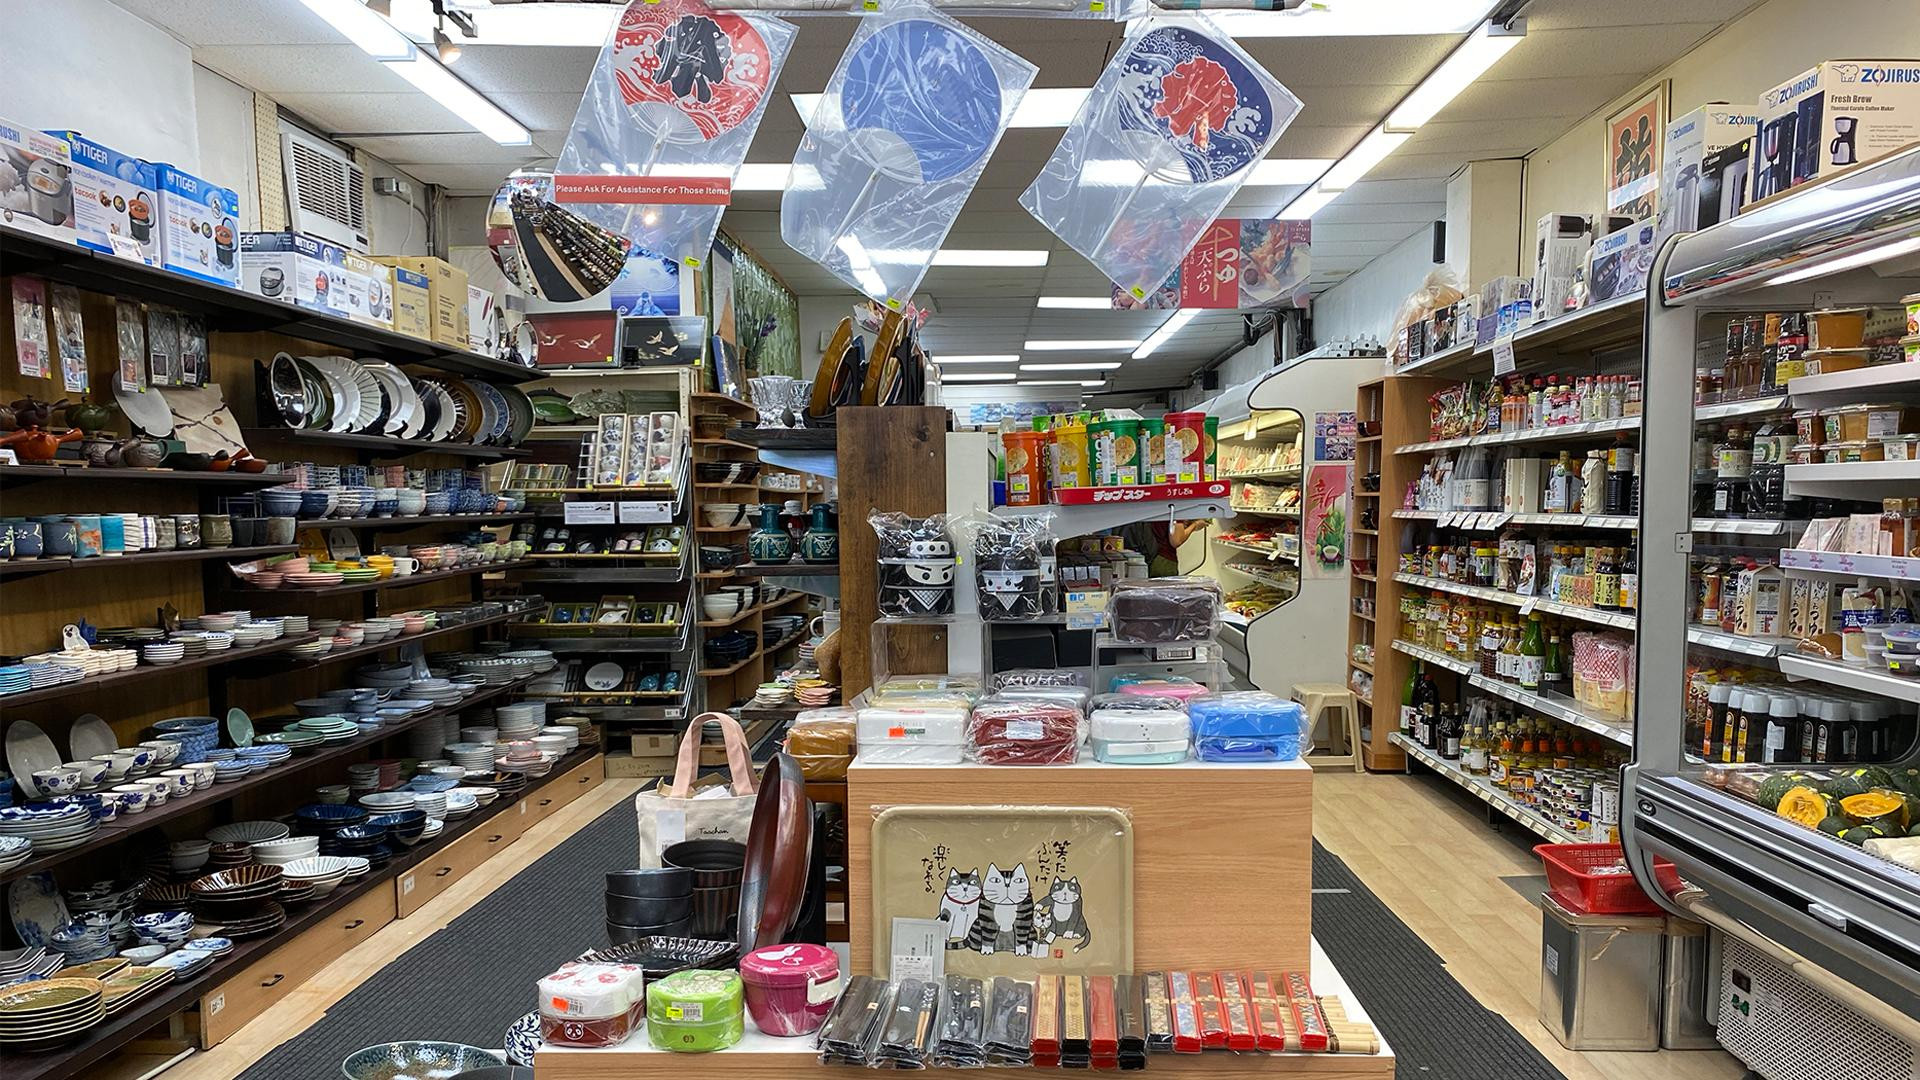 Local businesses in Toronto | The interior of Sanko Trading Co.